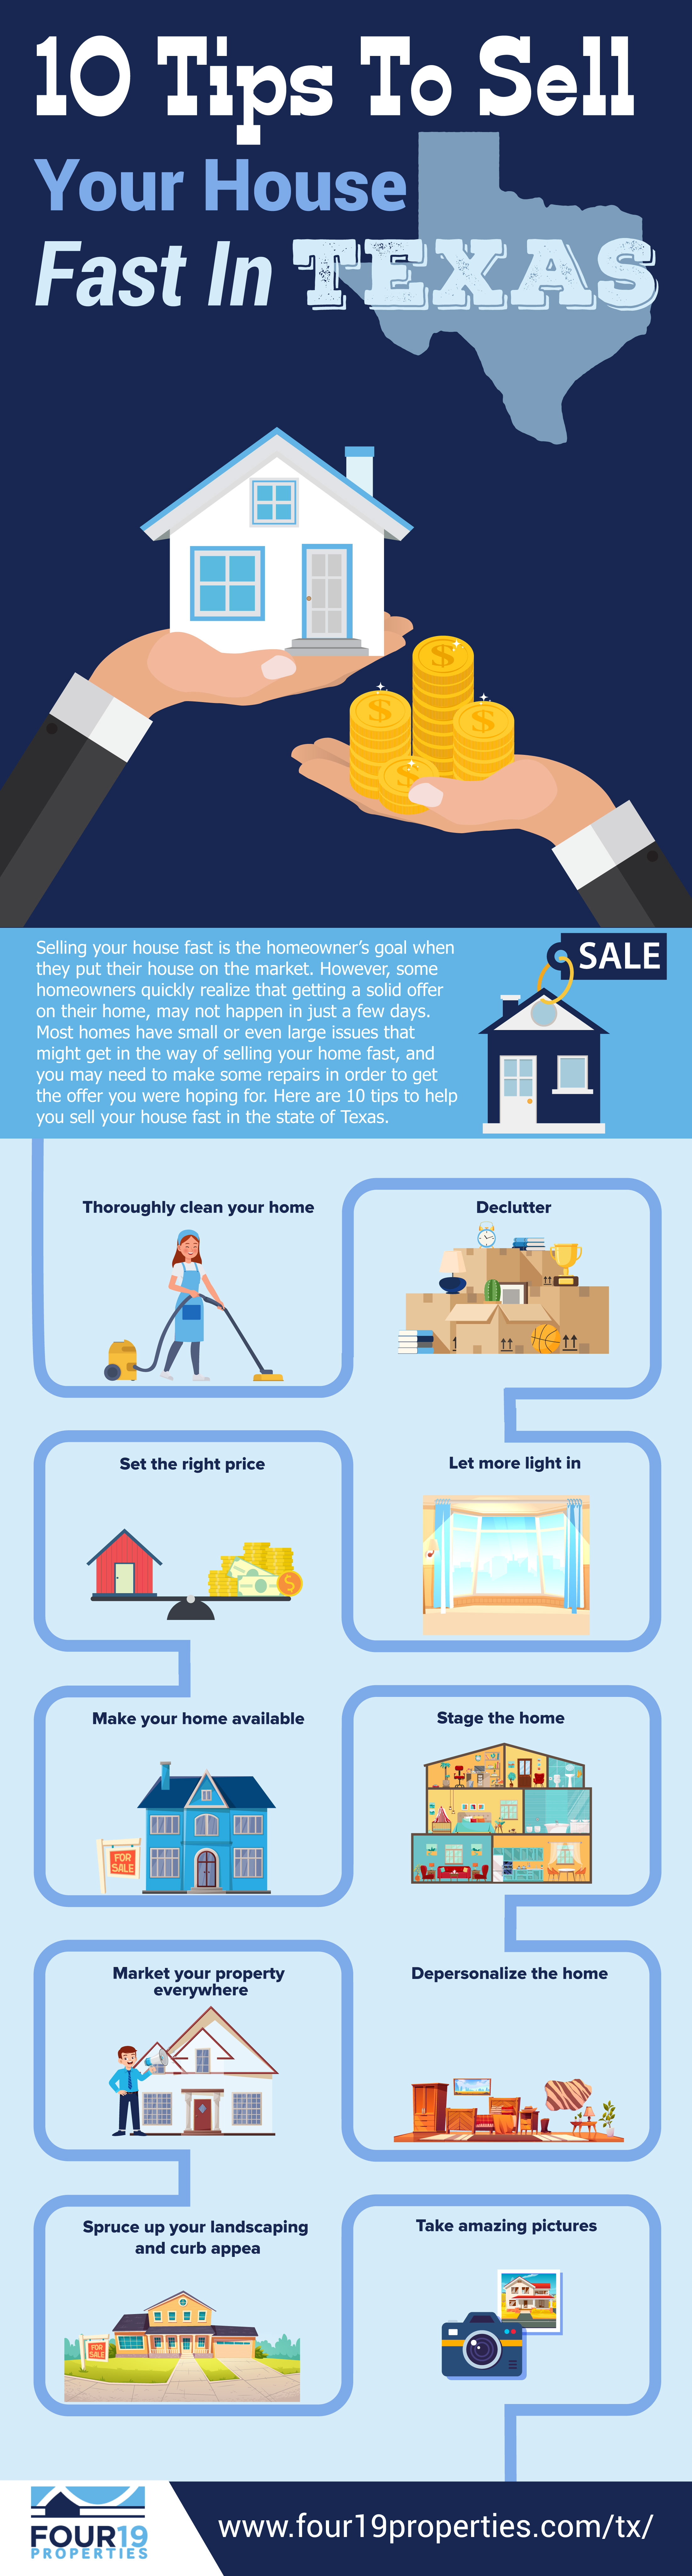 10 tips to sell your house fast in texas